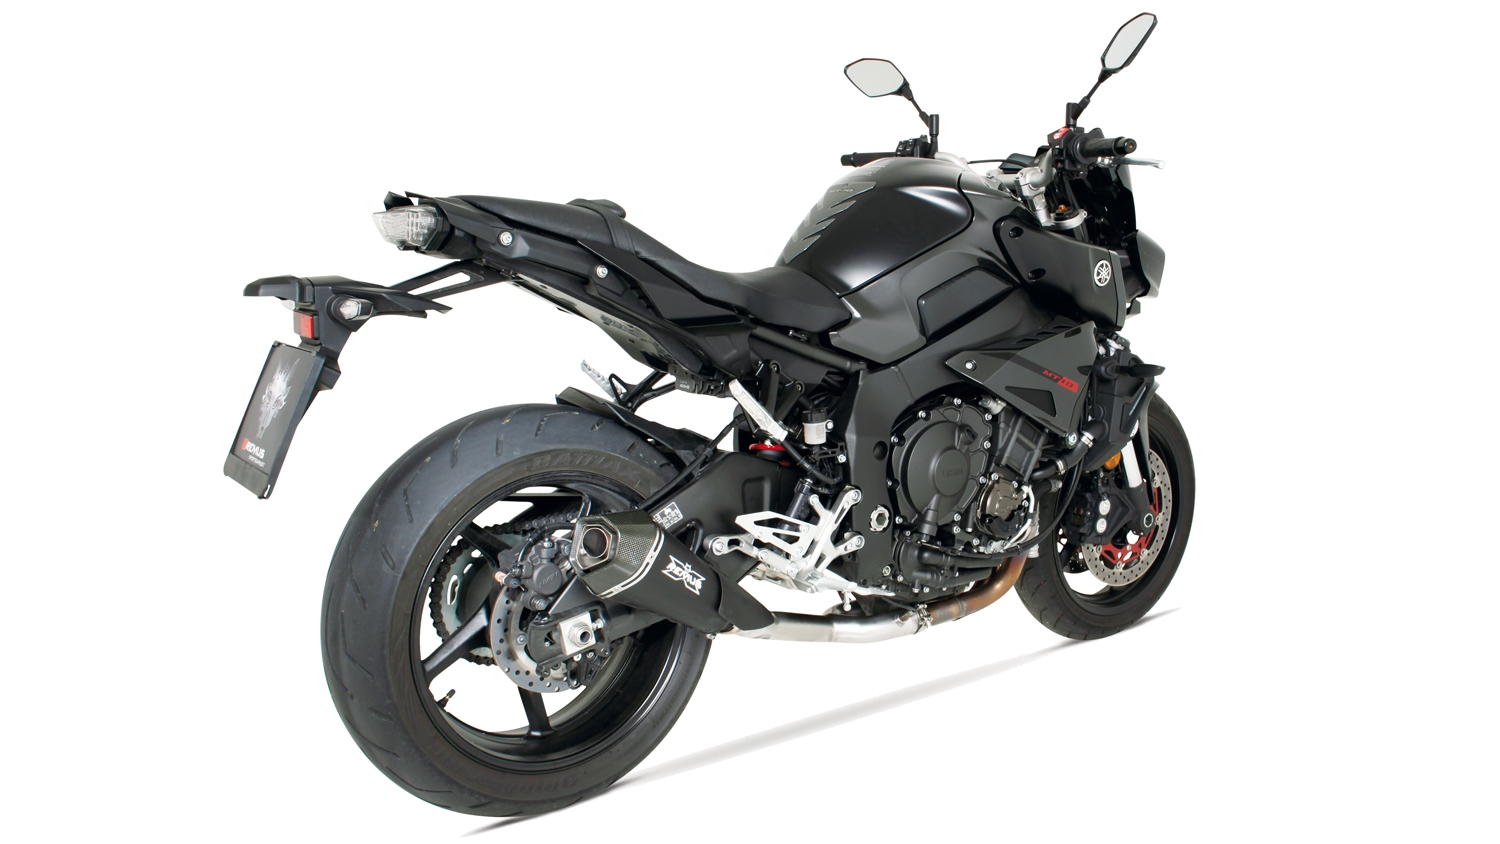 remus news bike info 17 16 yamaha mt 10 mod 16. Black Bedroom Furniture Sets. Home Design Ideas